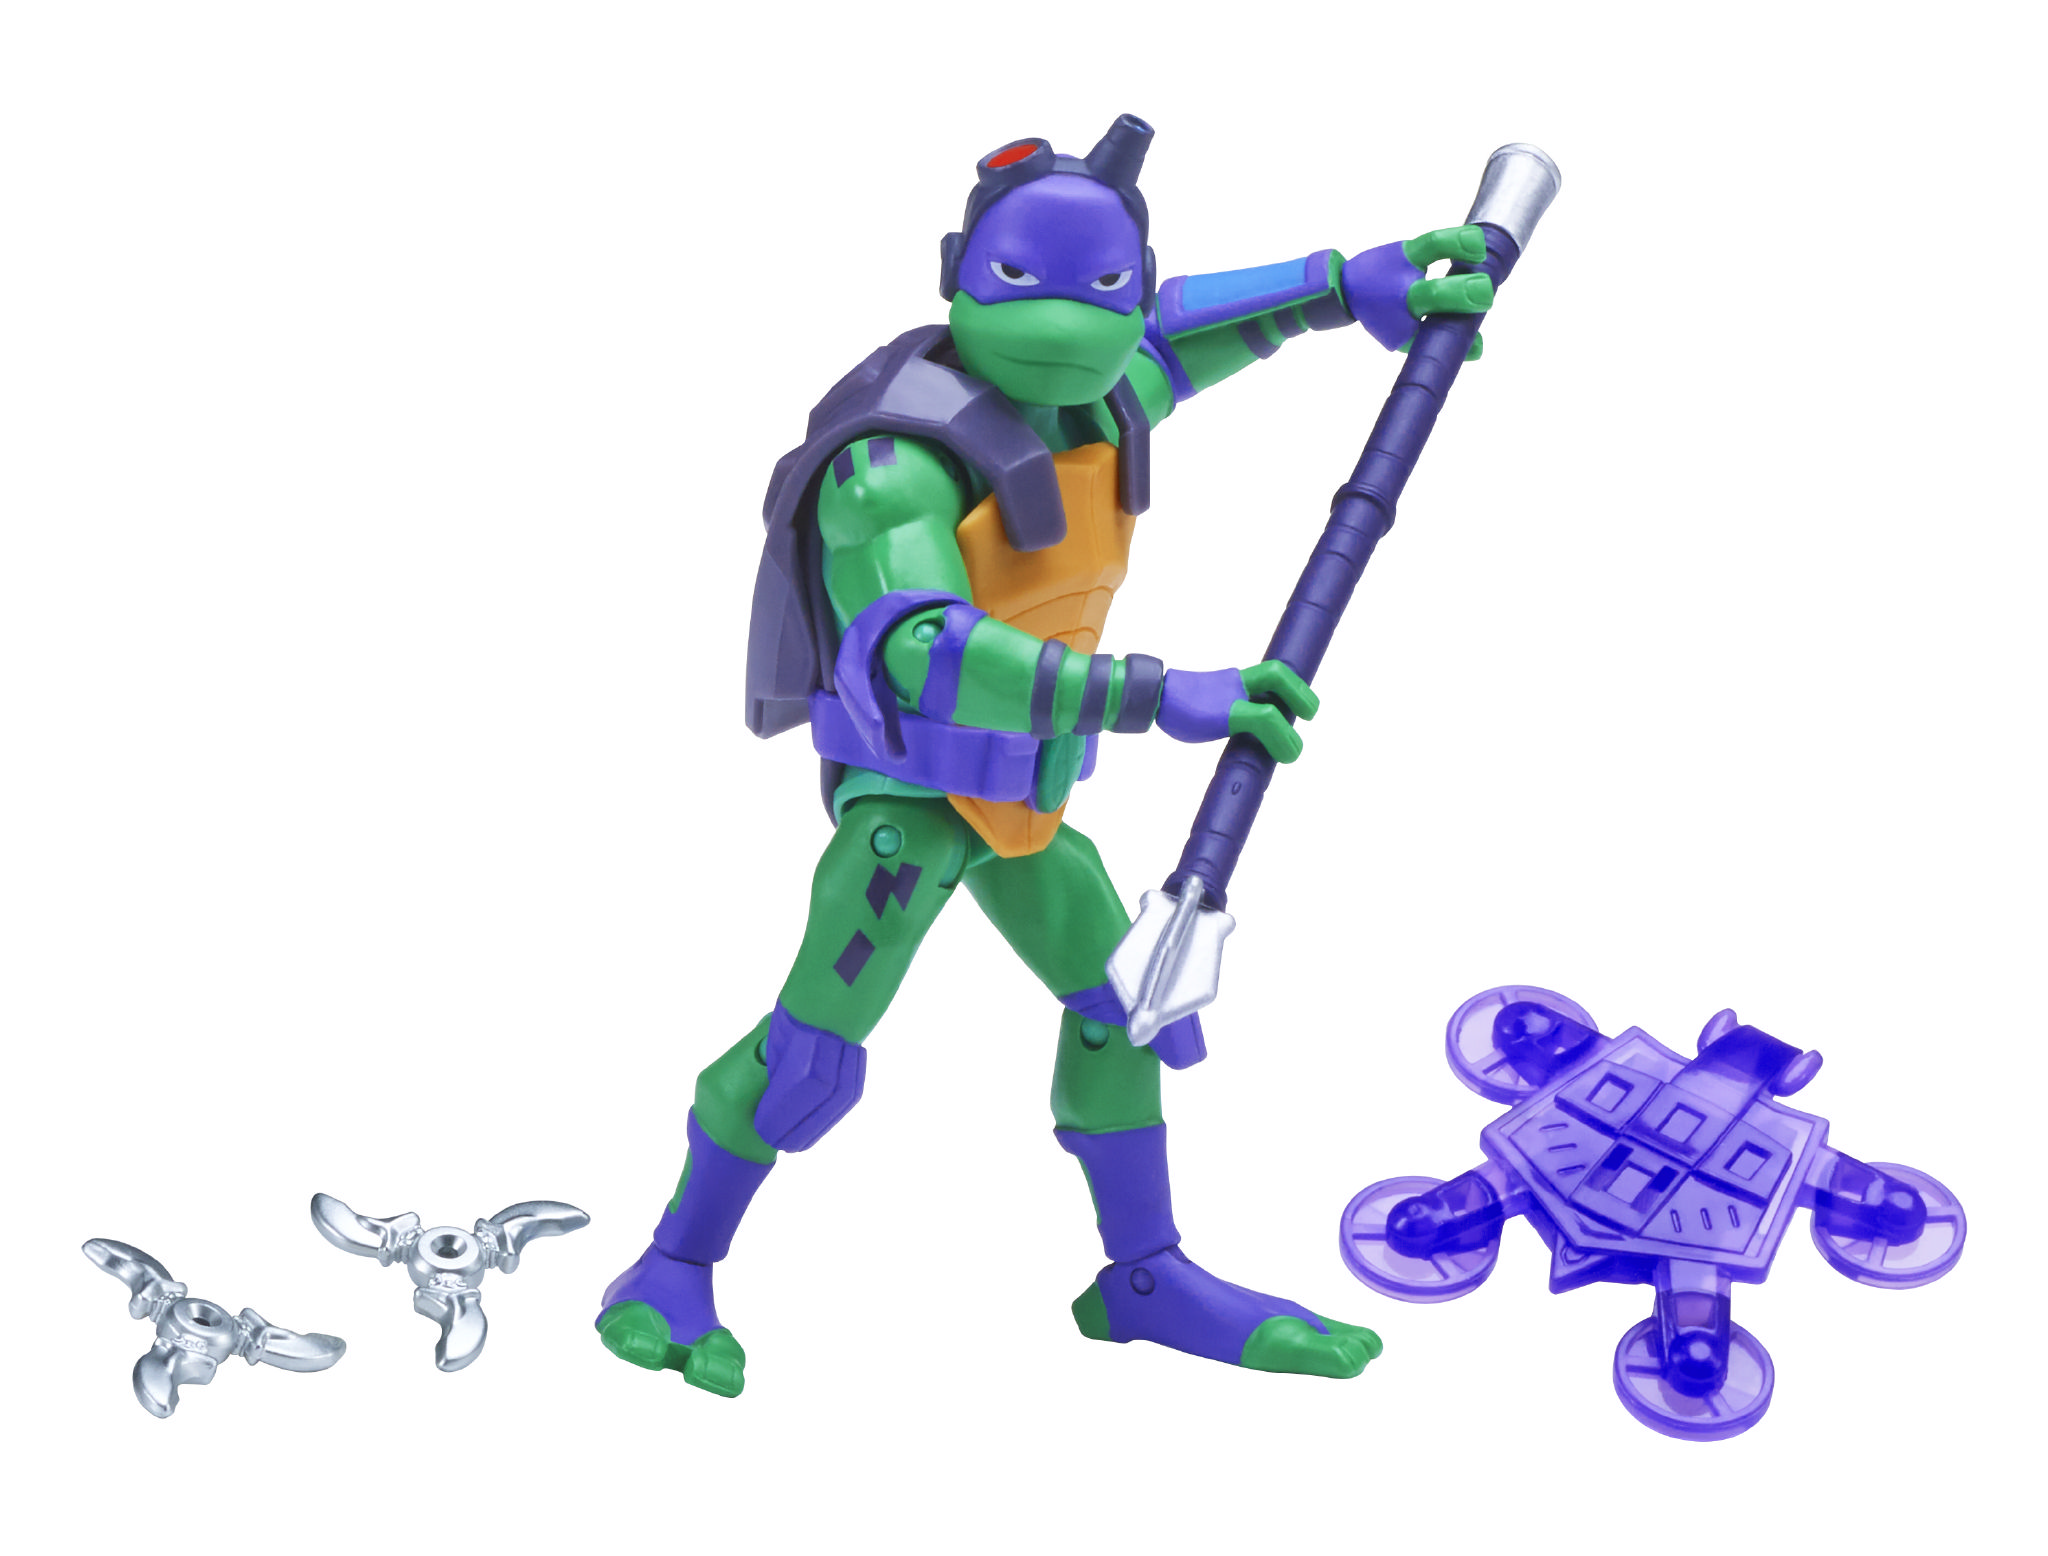 SDCC Exclusive Rise of the Teenage Mutant Ninja Turtles from